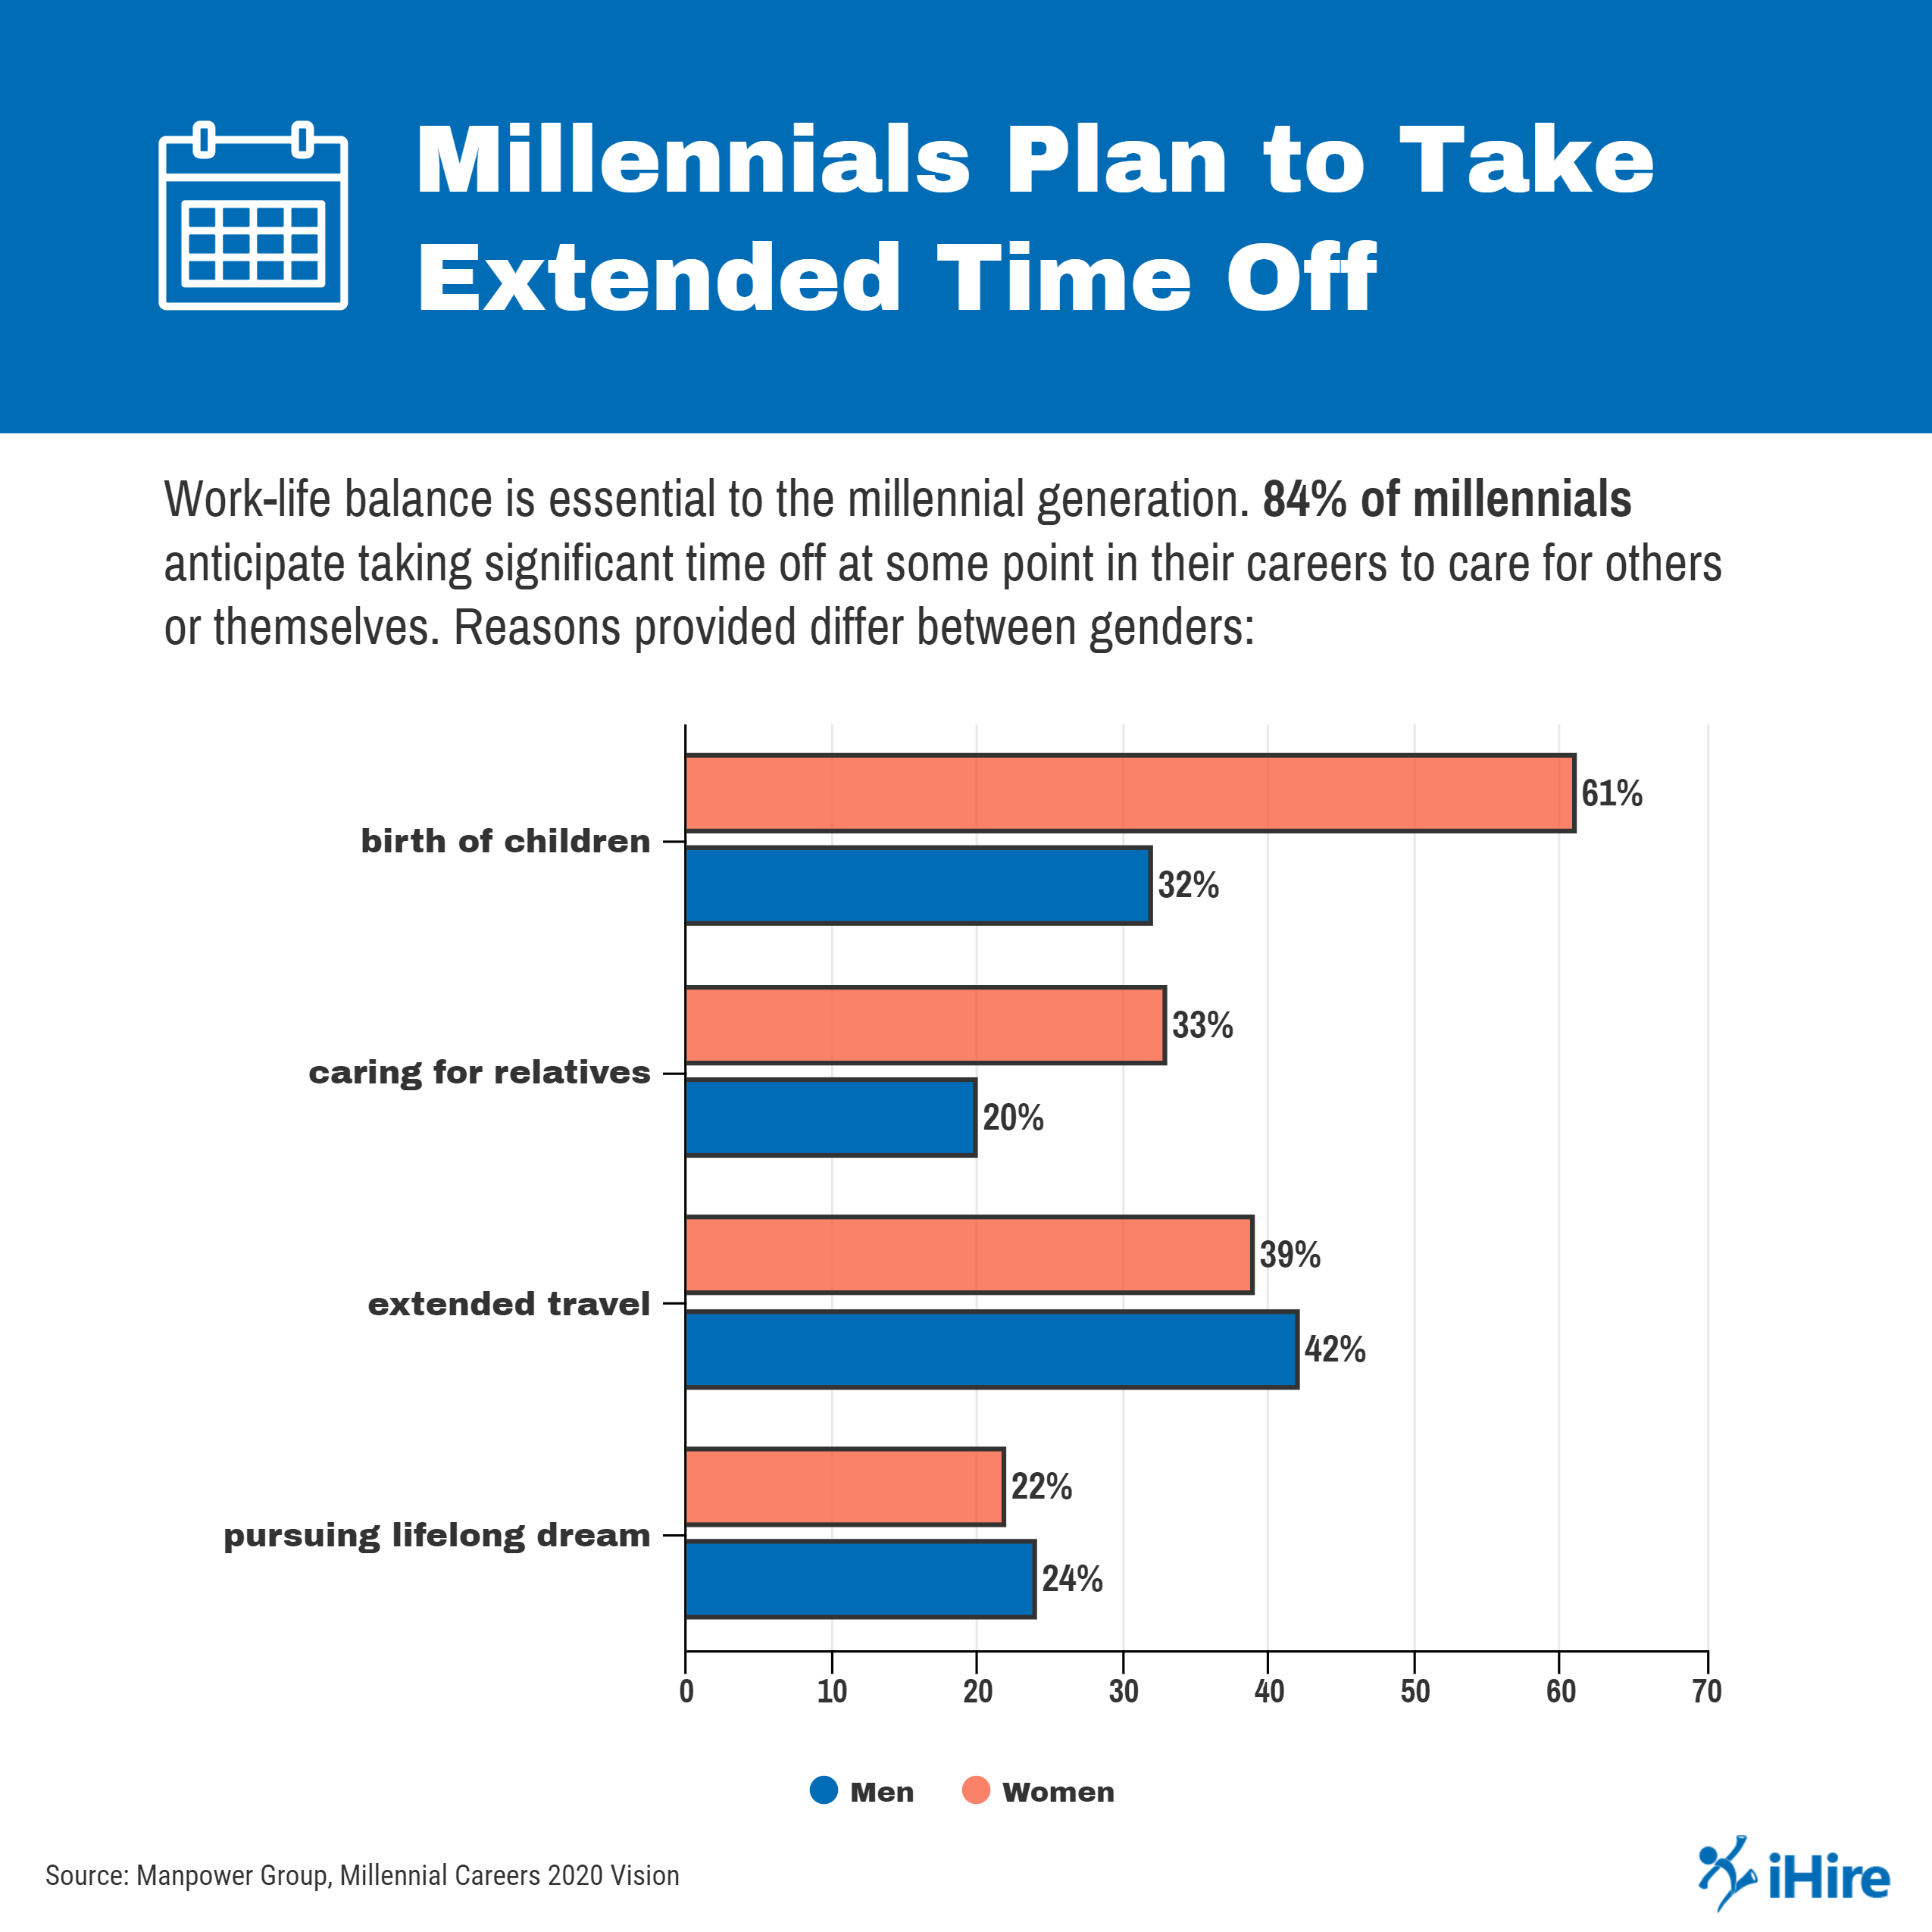 Millennials plan to take extended time off throughout their careers